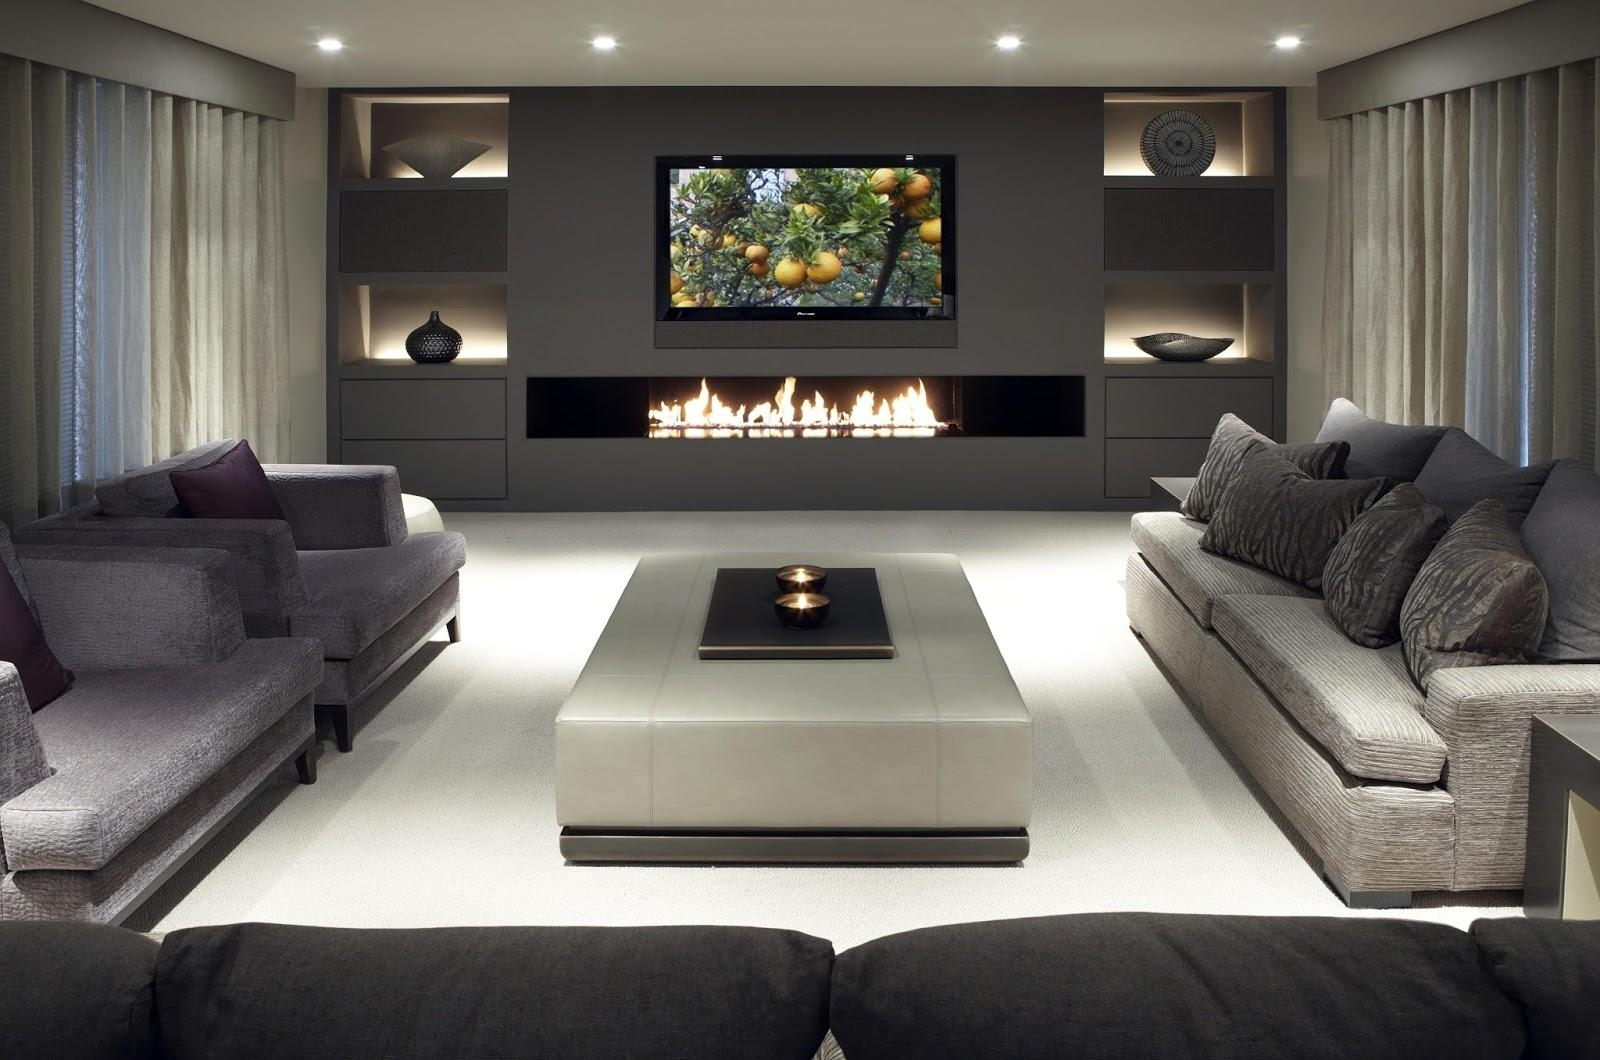 3 Media Room Ideas That Will Suit You | Luhomes In Media Room Sectional (View 15 of 20)